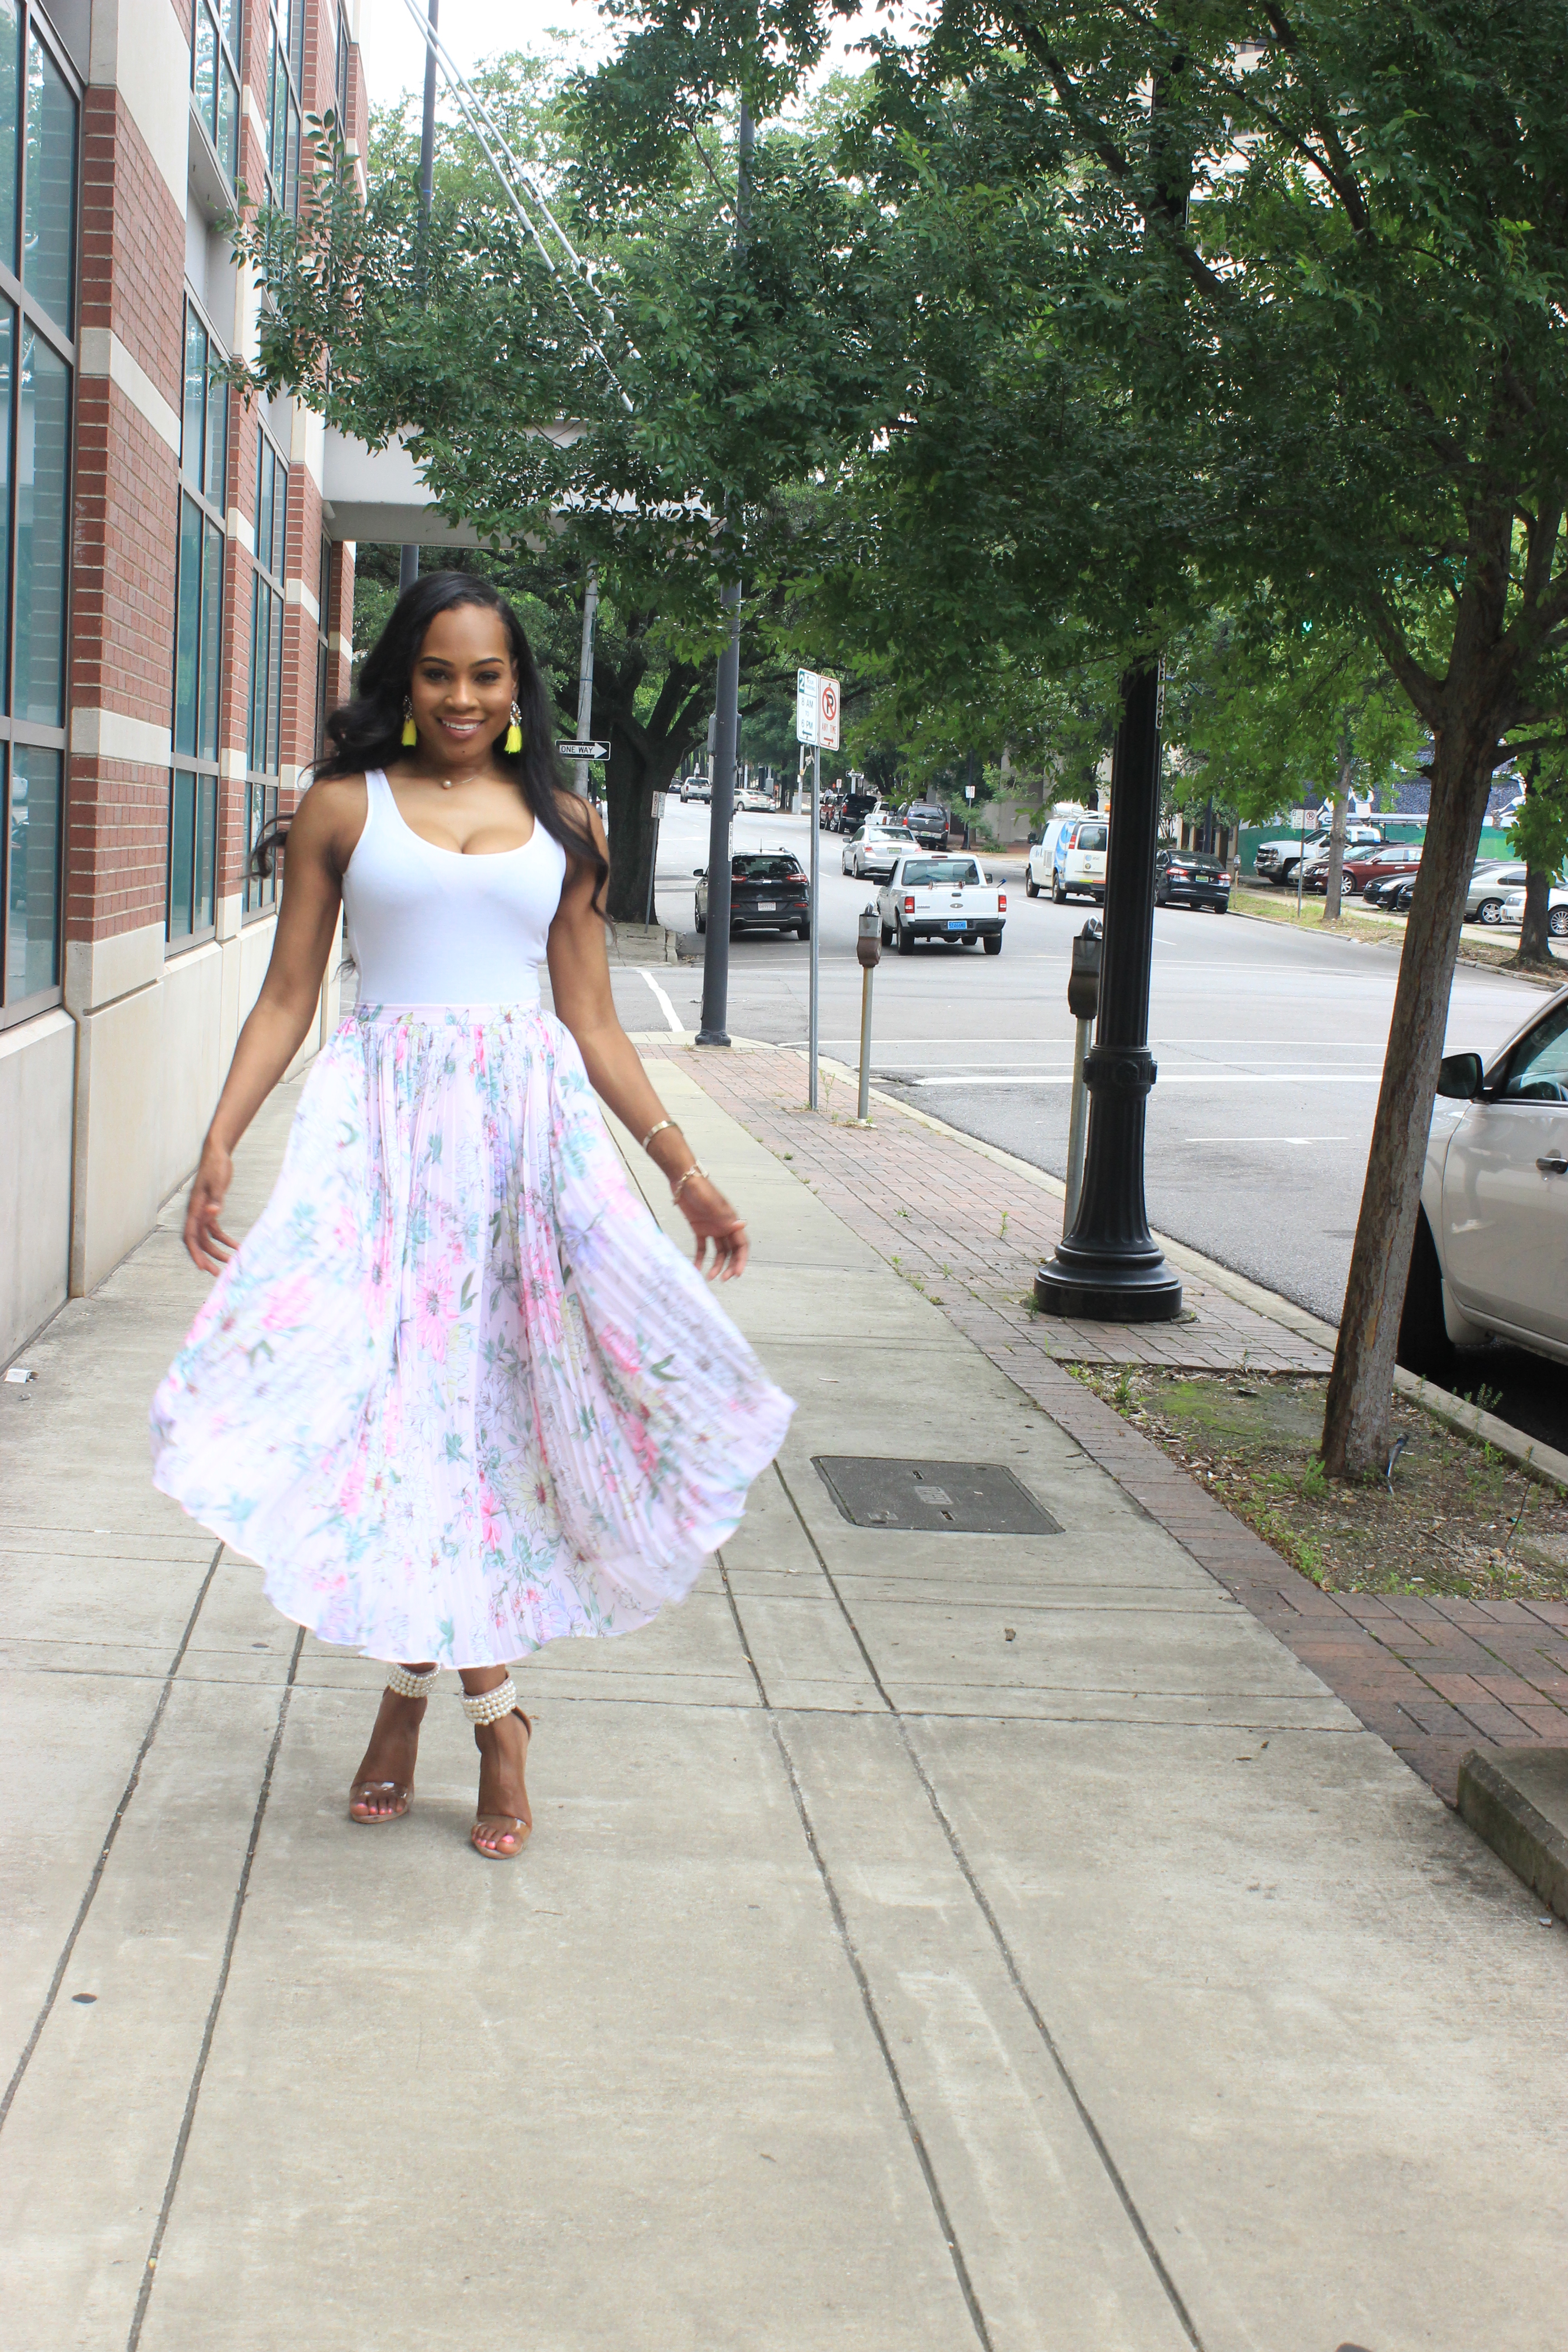 Style-files-hm-pleated-pastel-pink-floral-pleated-midi-skirt-forever21-bodysuit-misguided-pearl-ankle-strap-heel-sandals-oohlalablog-top-Birmingham-Alabama-blogger-3